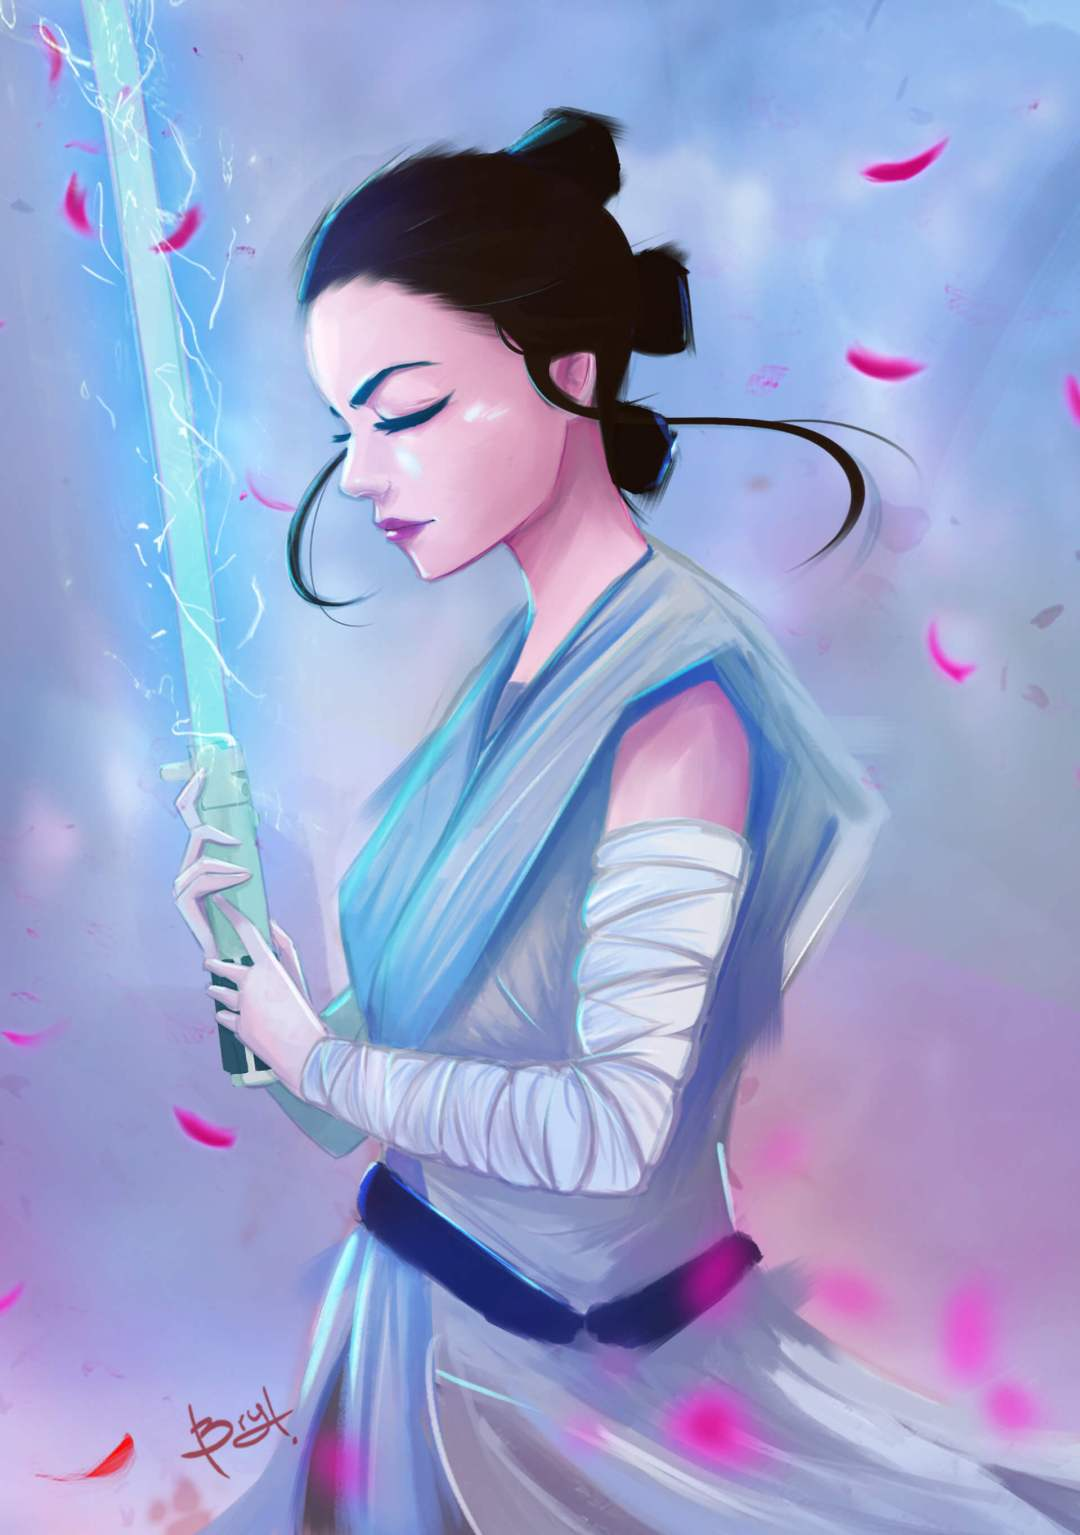 Rey by Brian Draws